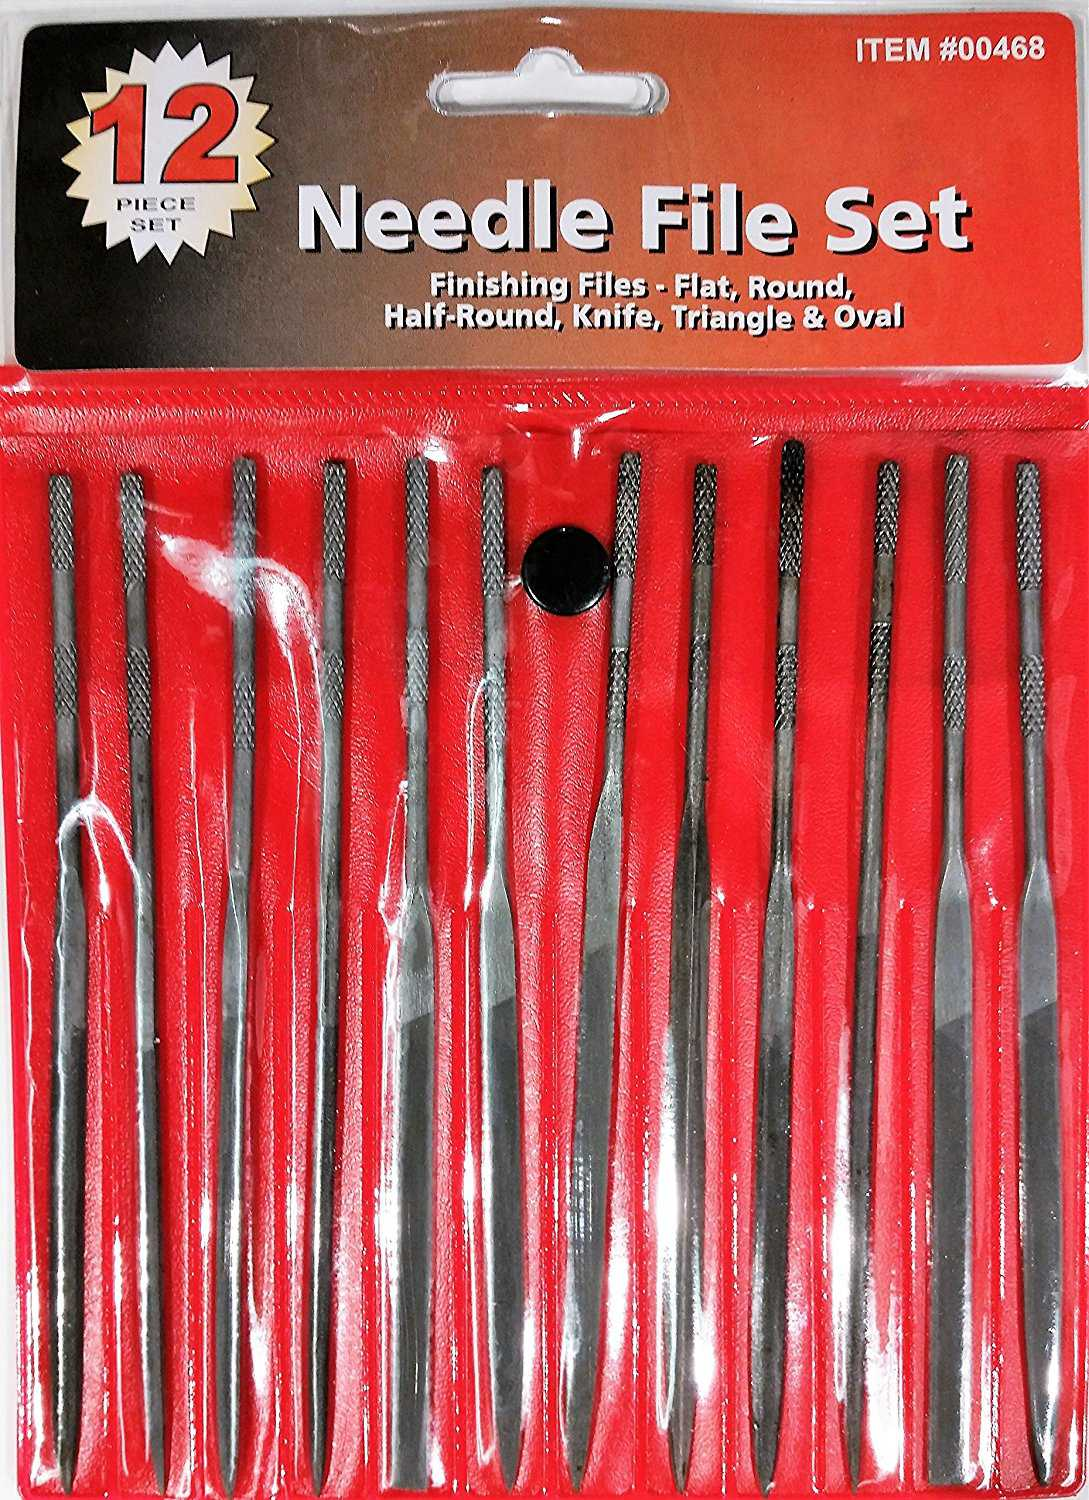 Central Forge 468 Needle File Set, 12 Piece